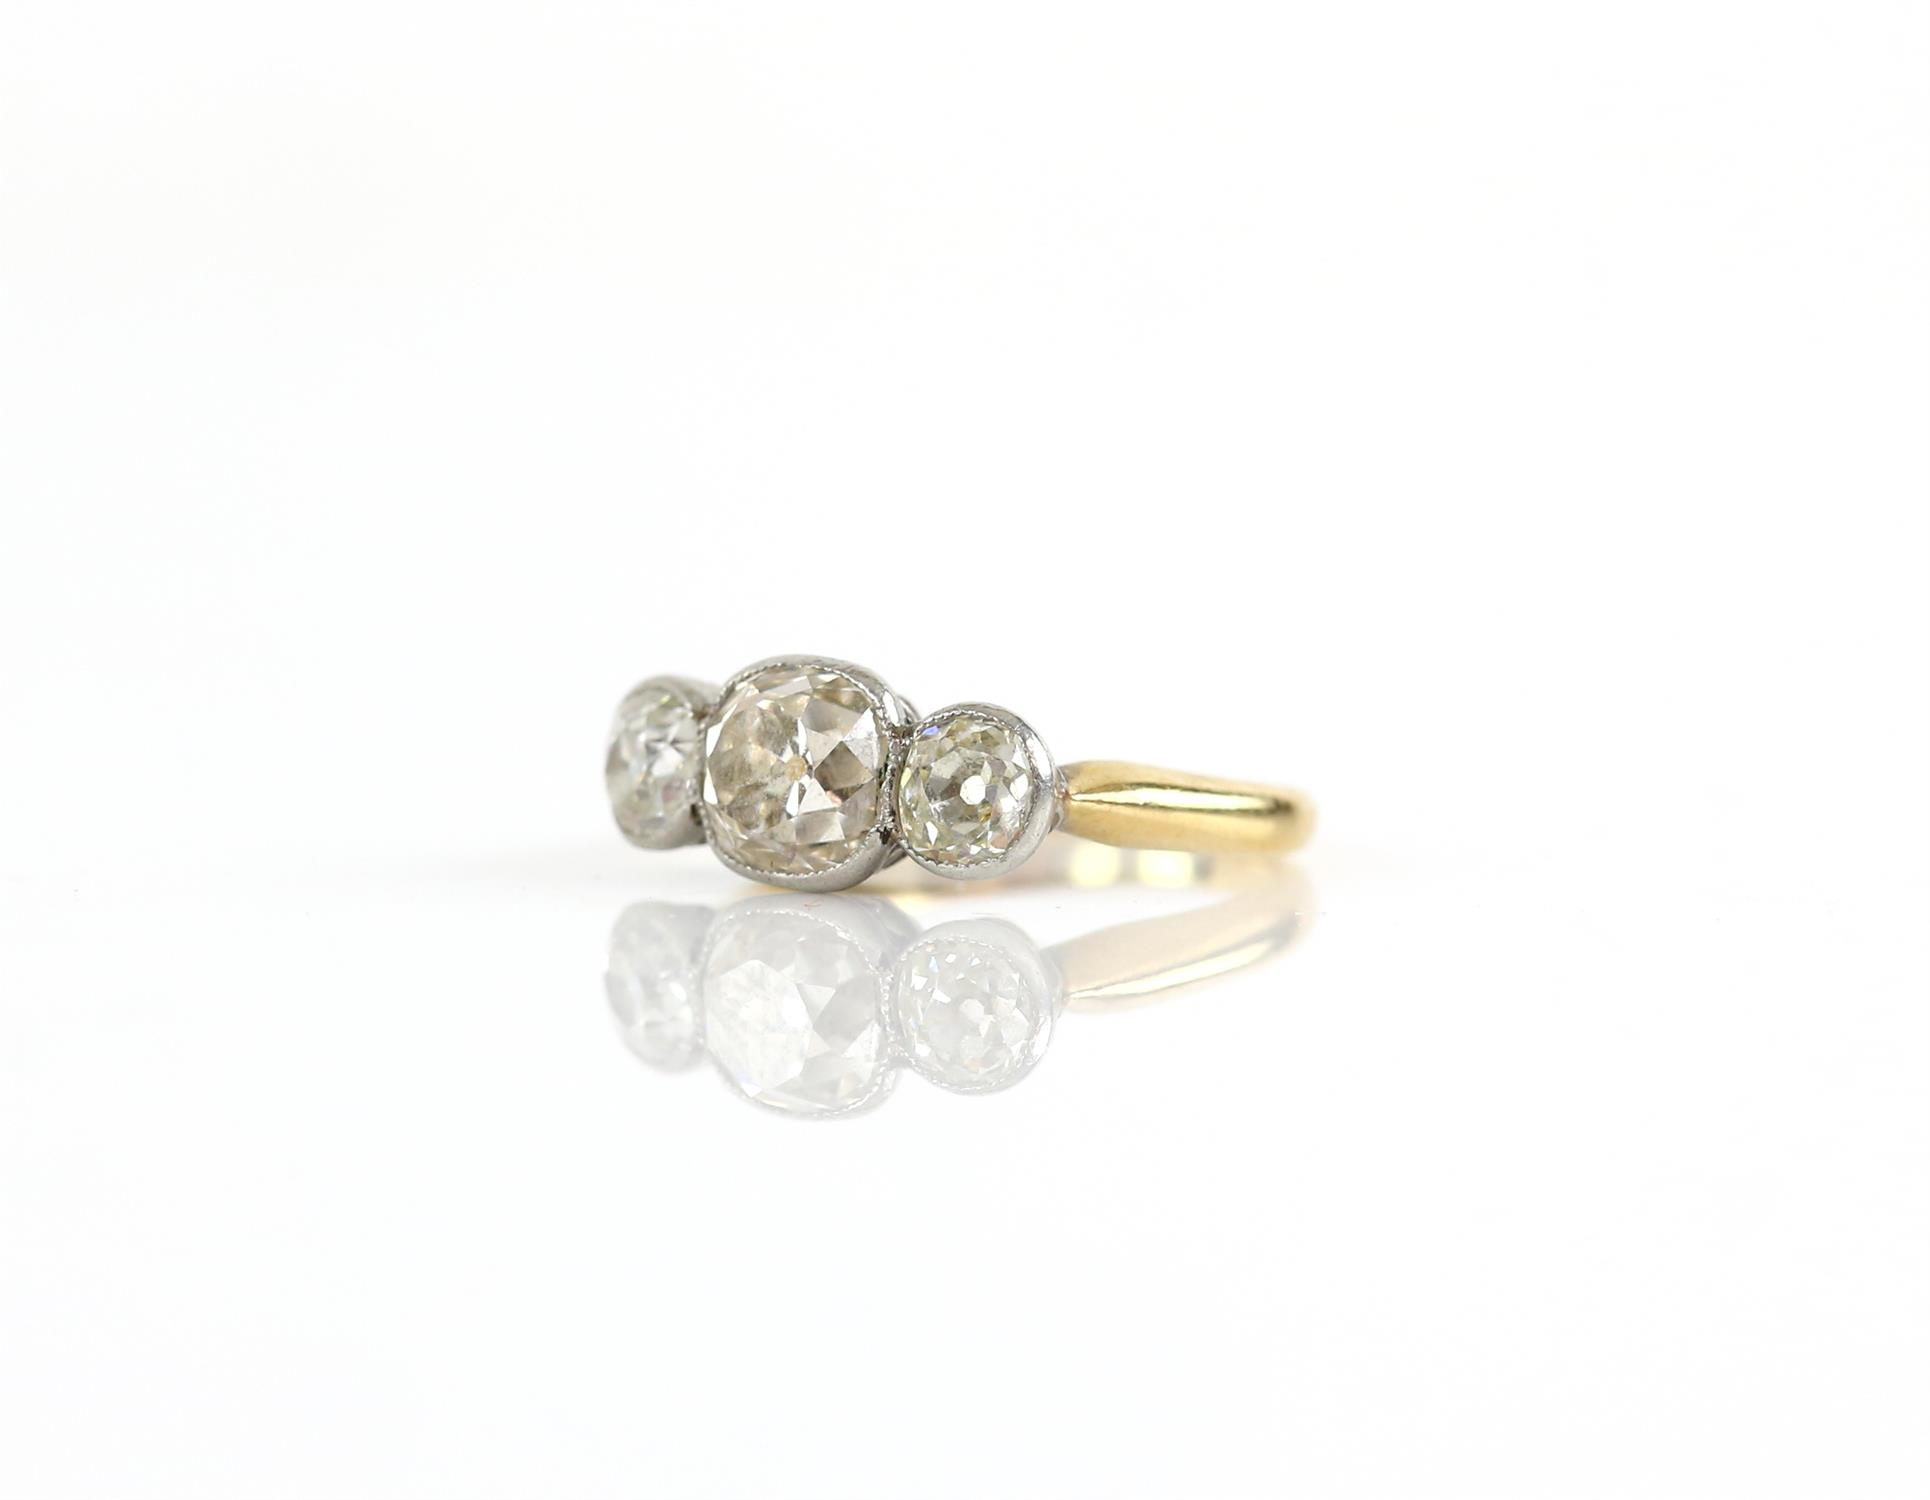 Old mine cut diamond ring, central stone estimated weight 1.20 carats, the side stone have an